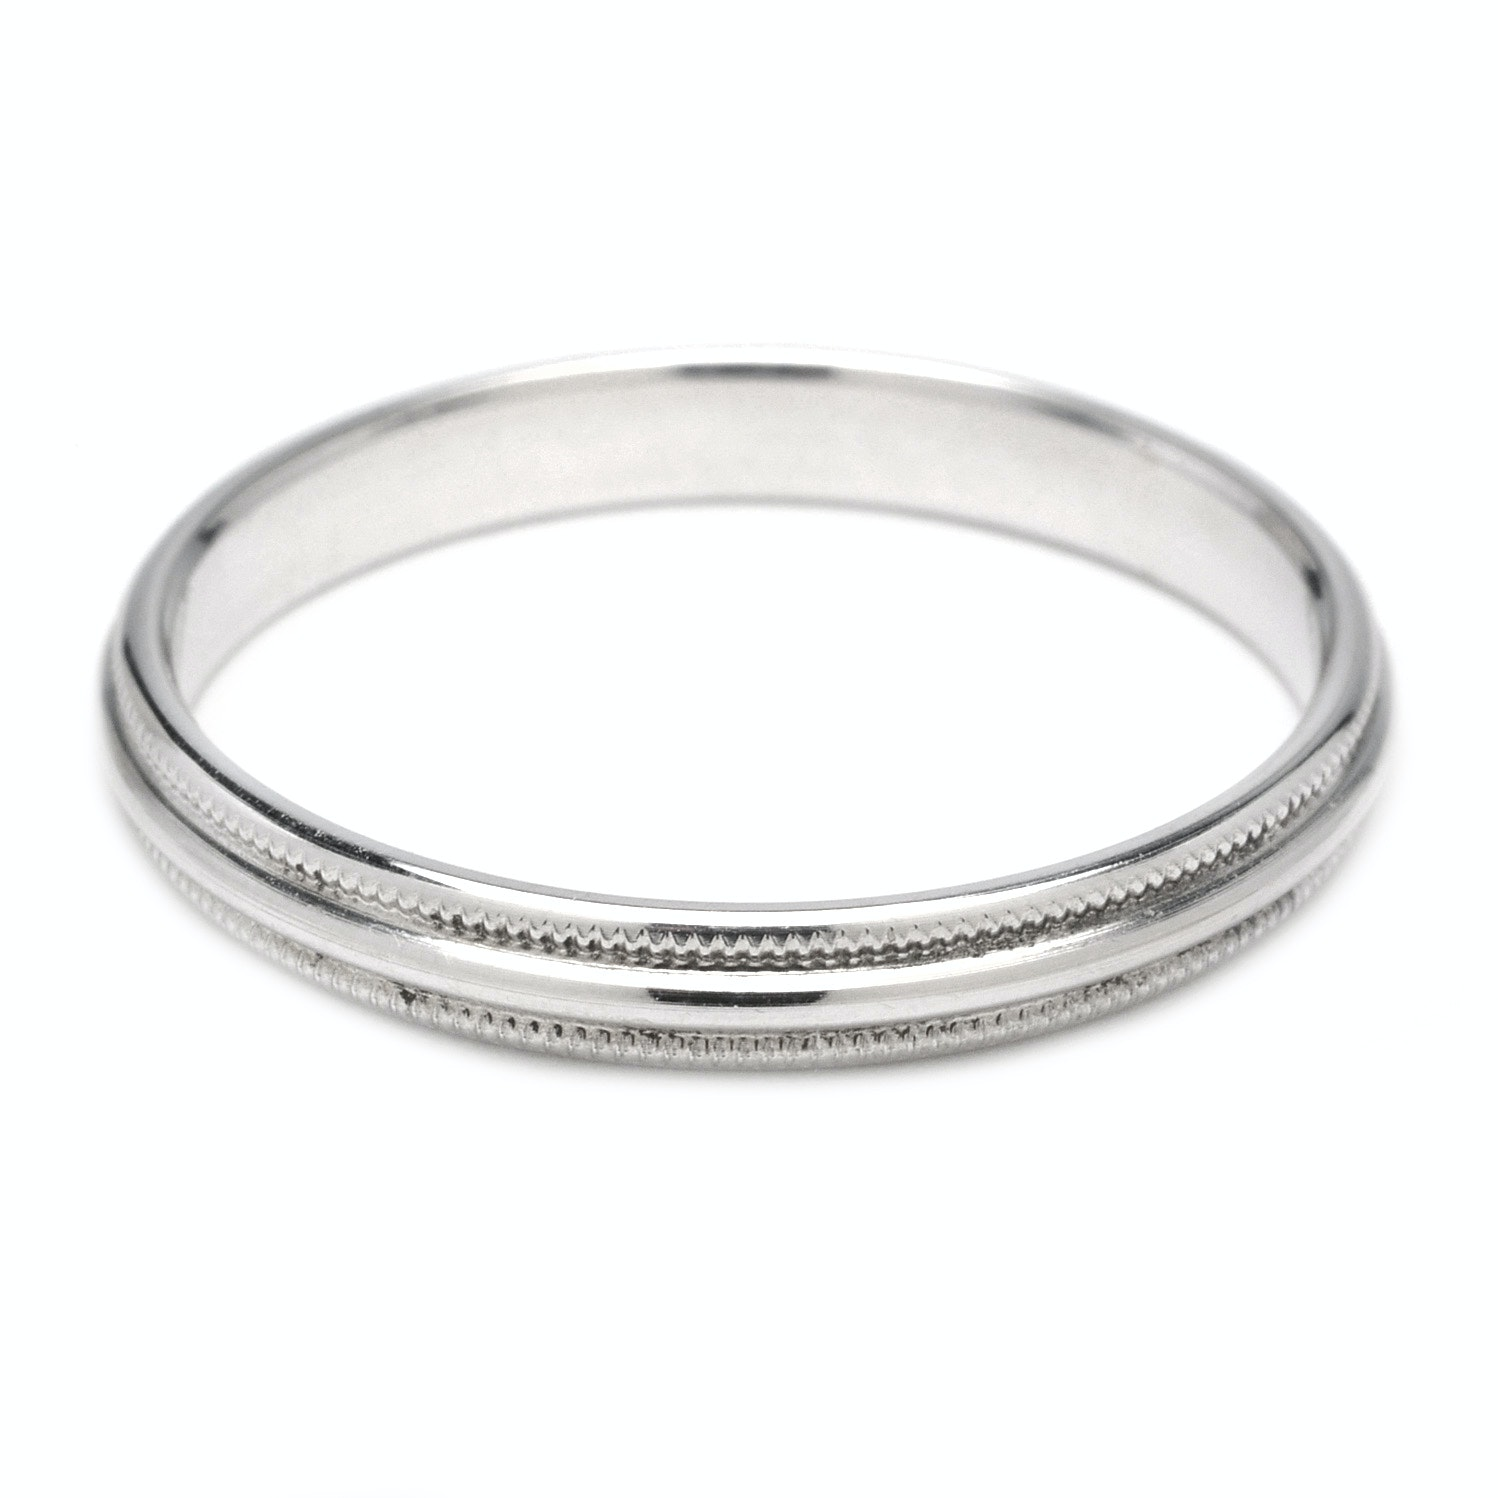 14K White Gold Ring Band from Quality Gold Inc EBTH